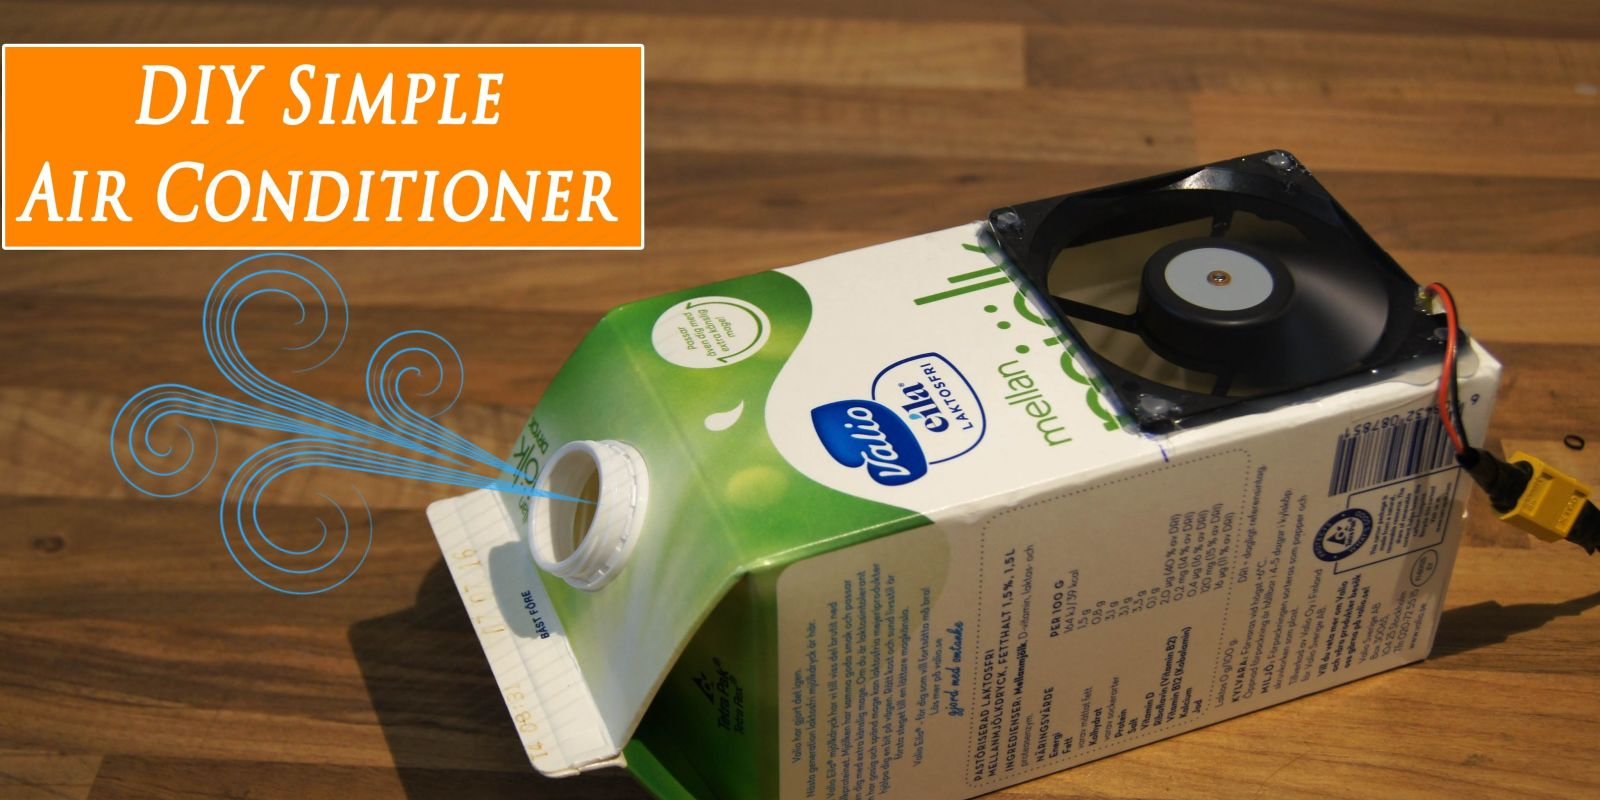 Diy Air Conditioner No Electricity How To Make A Dead Simple Air Conditioner Out Of A Milk Carton